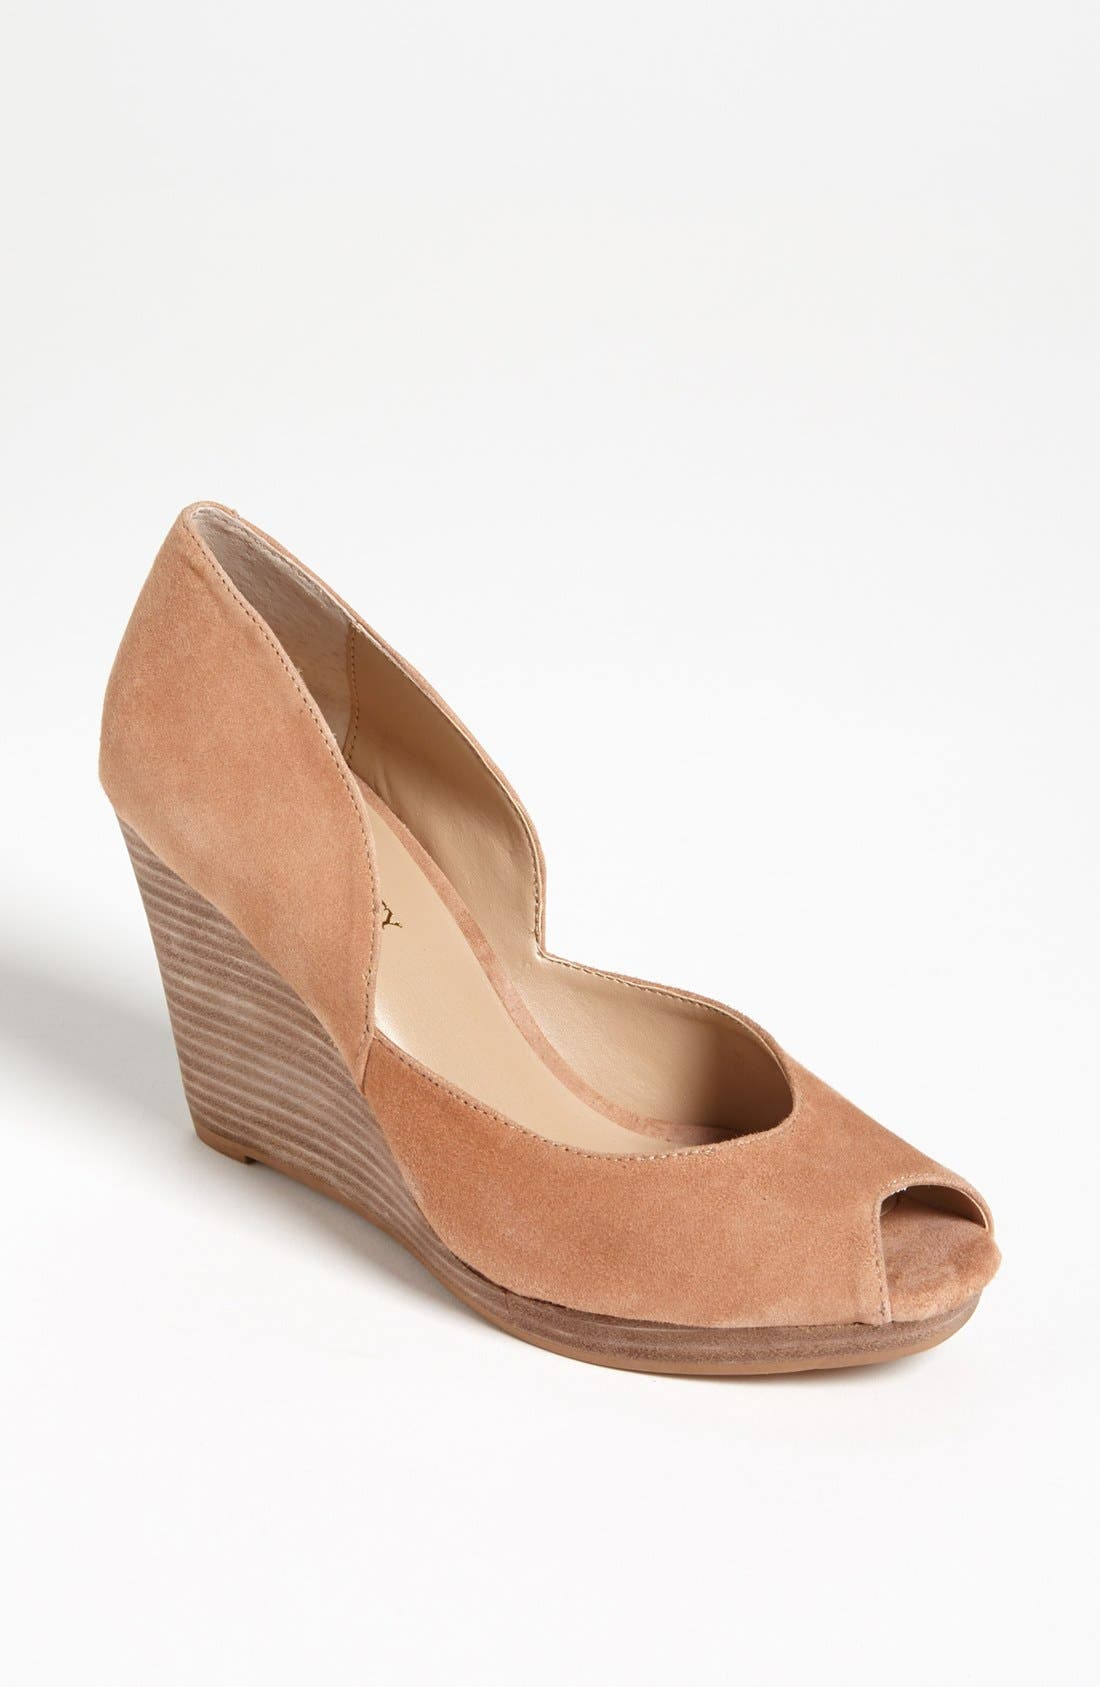 Main Image - Sole Society 'Kalani' Pump